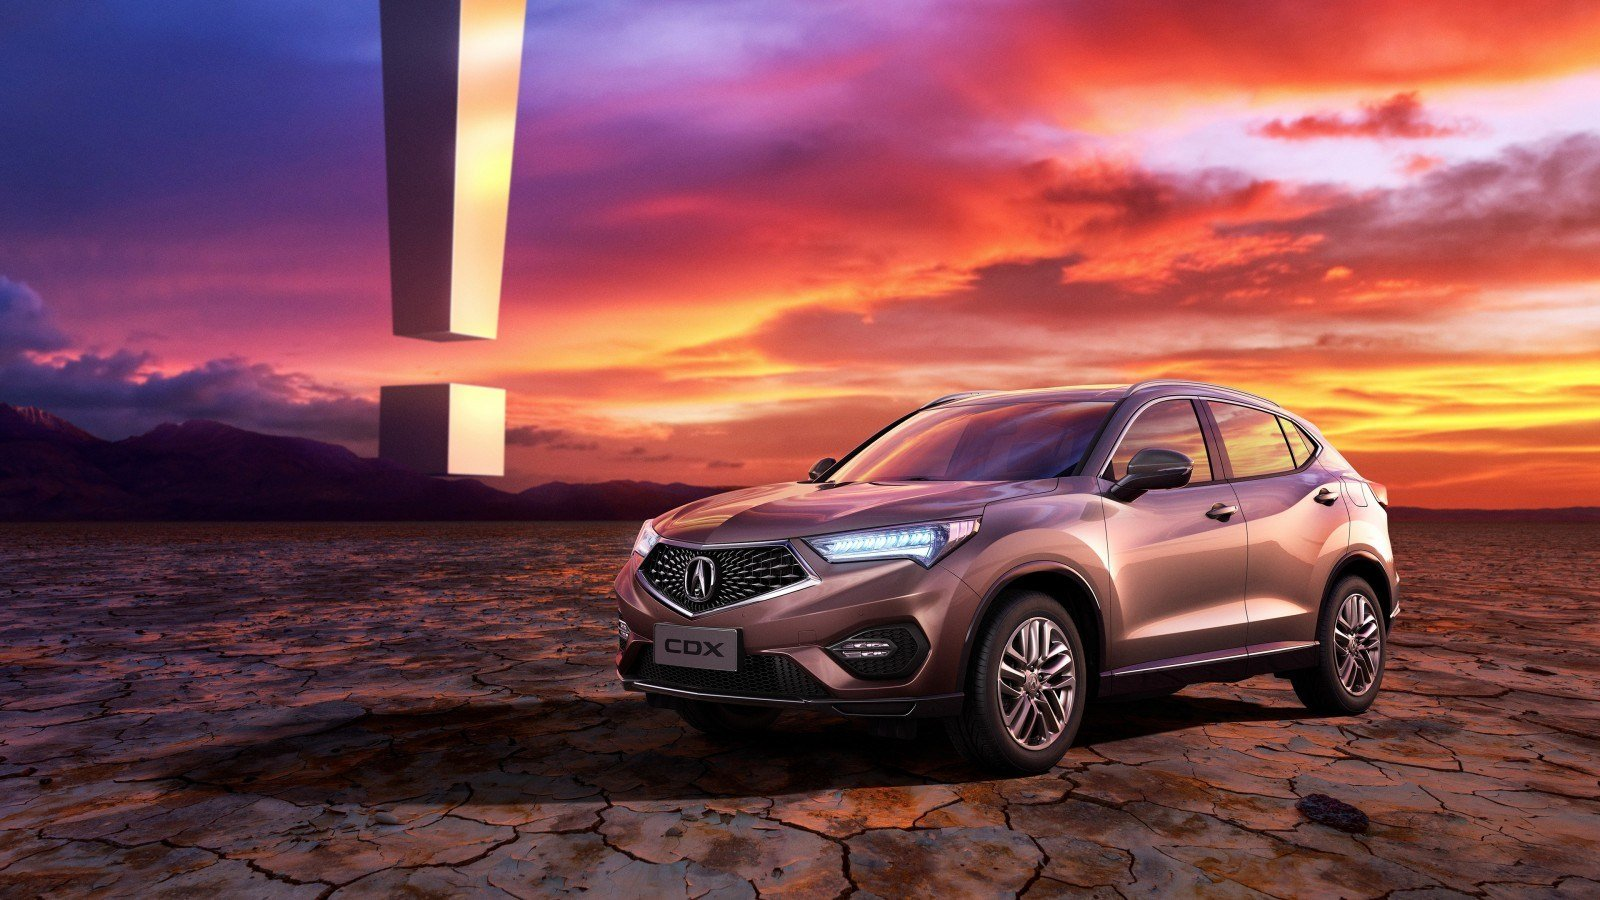 Latest Acura Cdx 2017 Wallpaper Hd Car Wallpapers Id 6529 Free Download